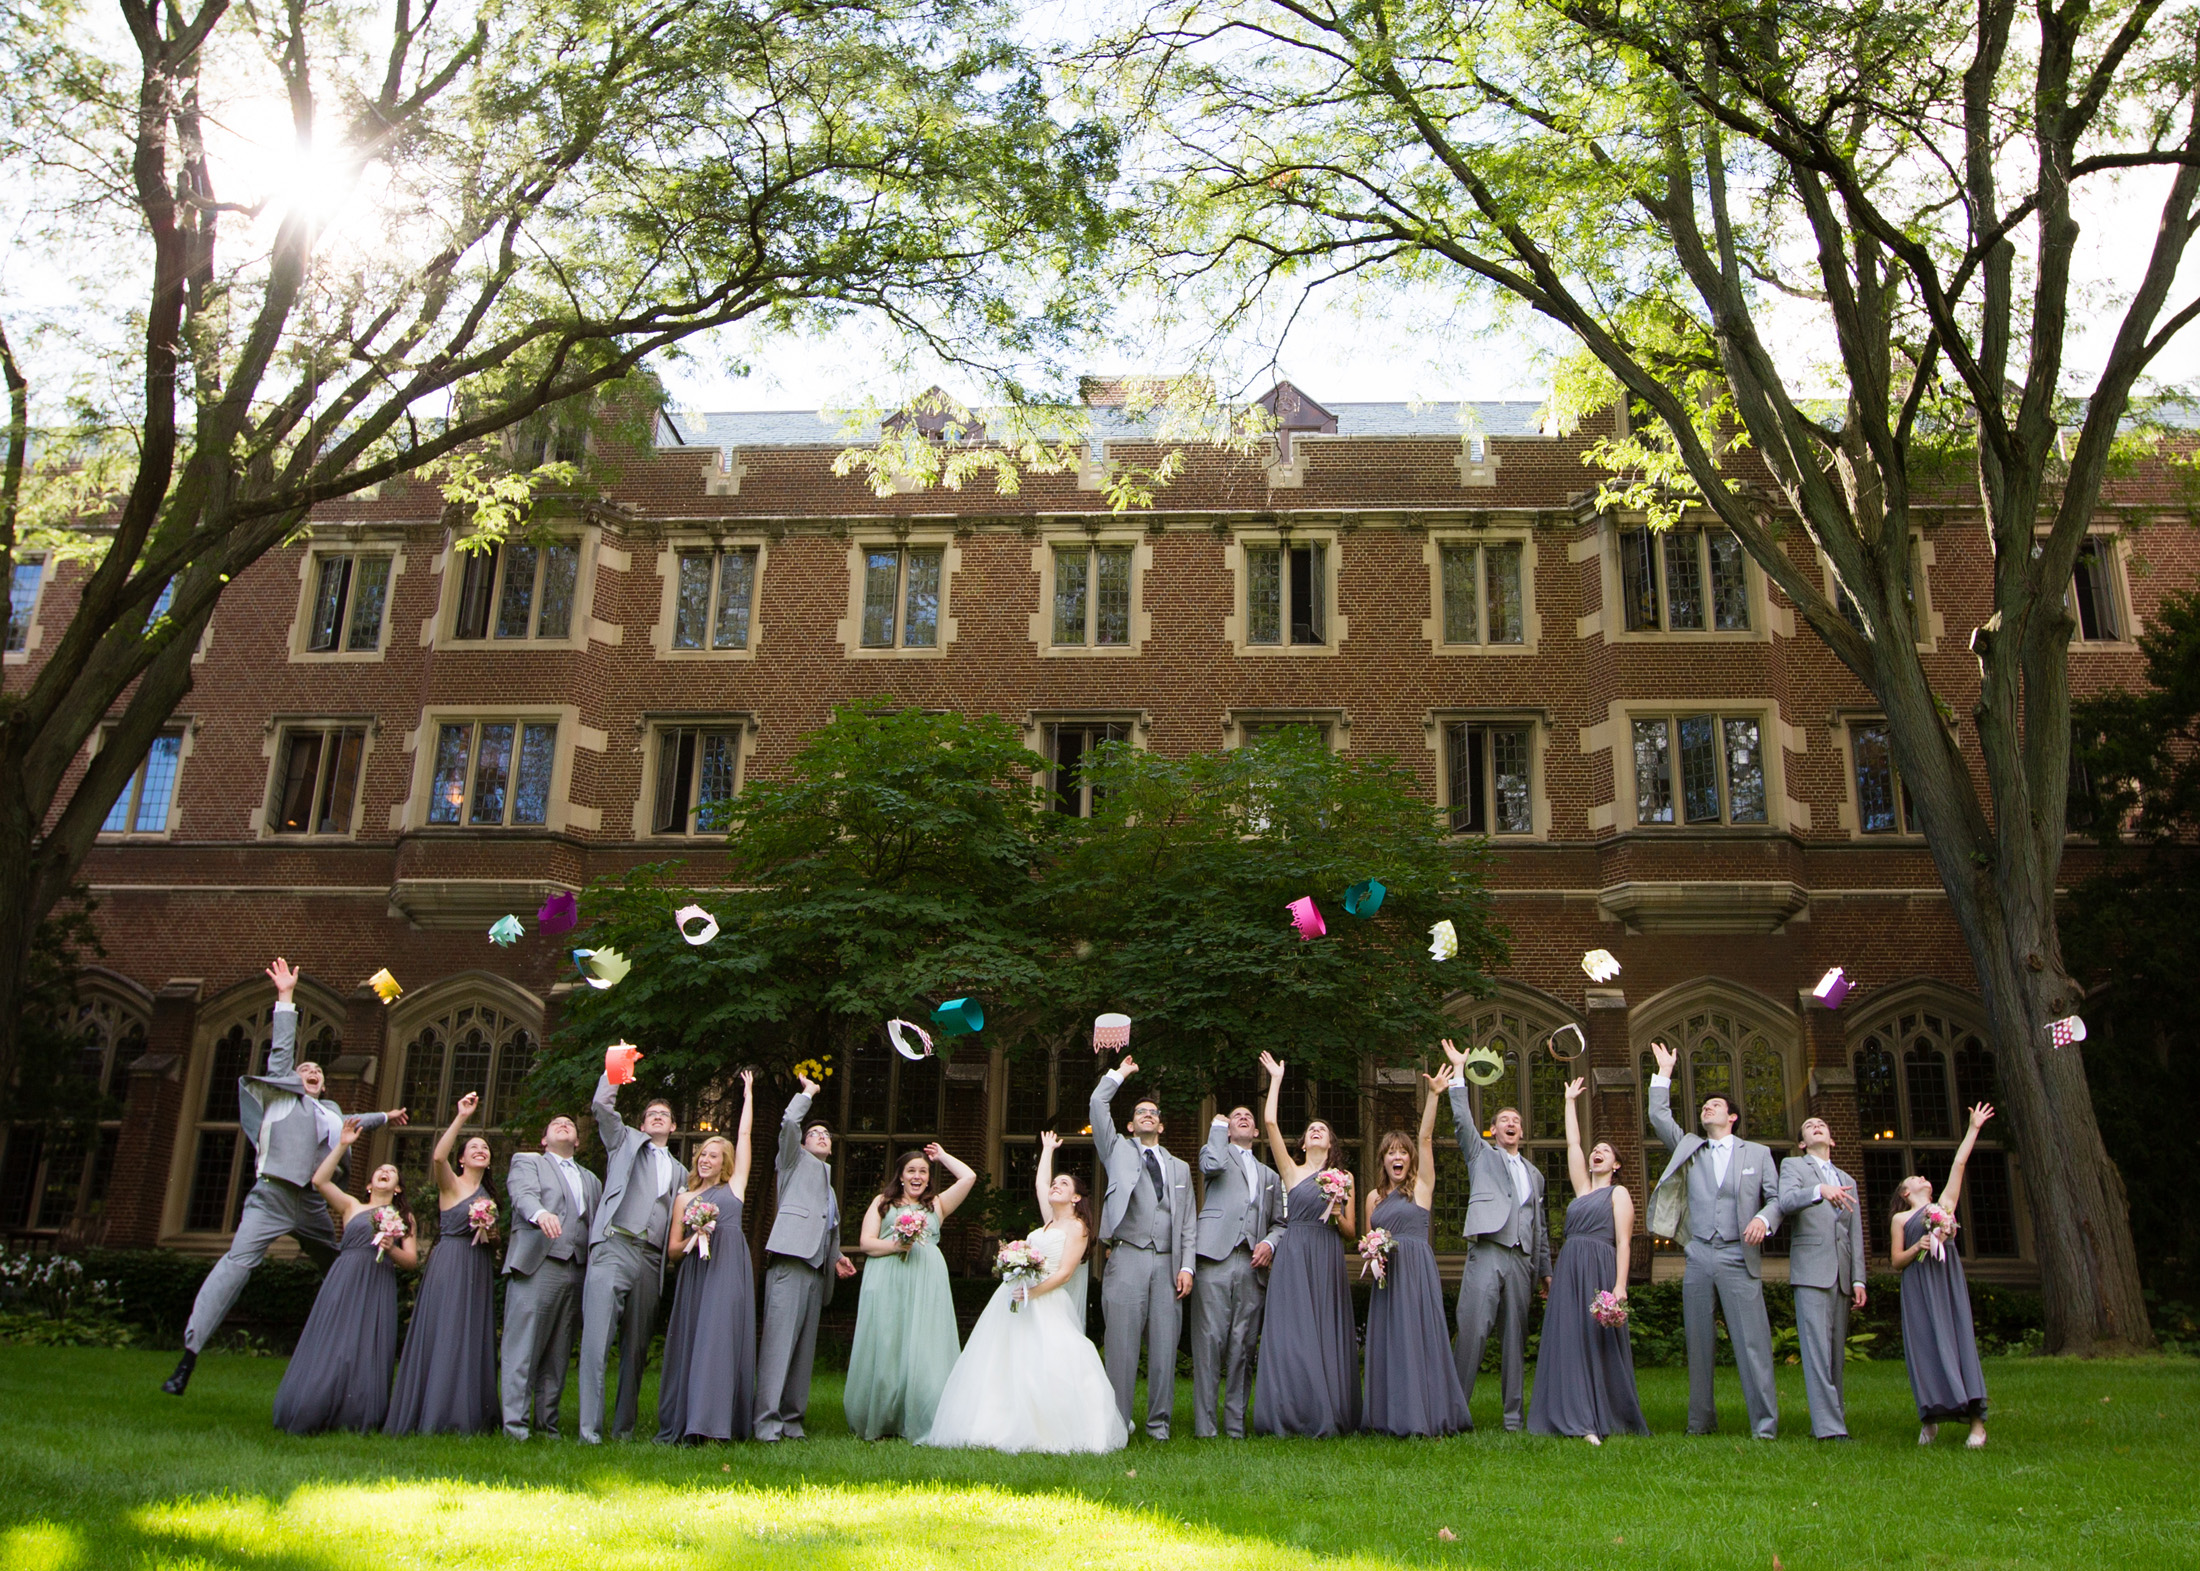 UofM_weddings_hull_melanie_reyes_054